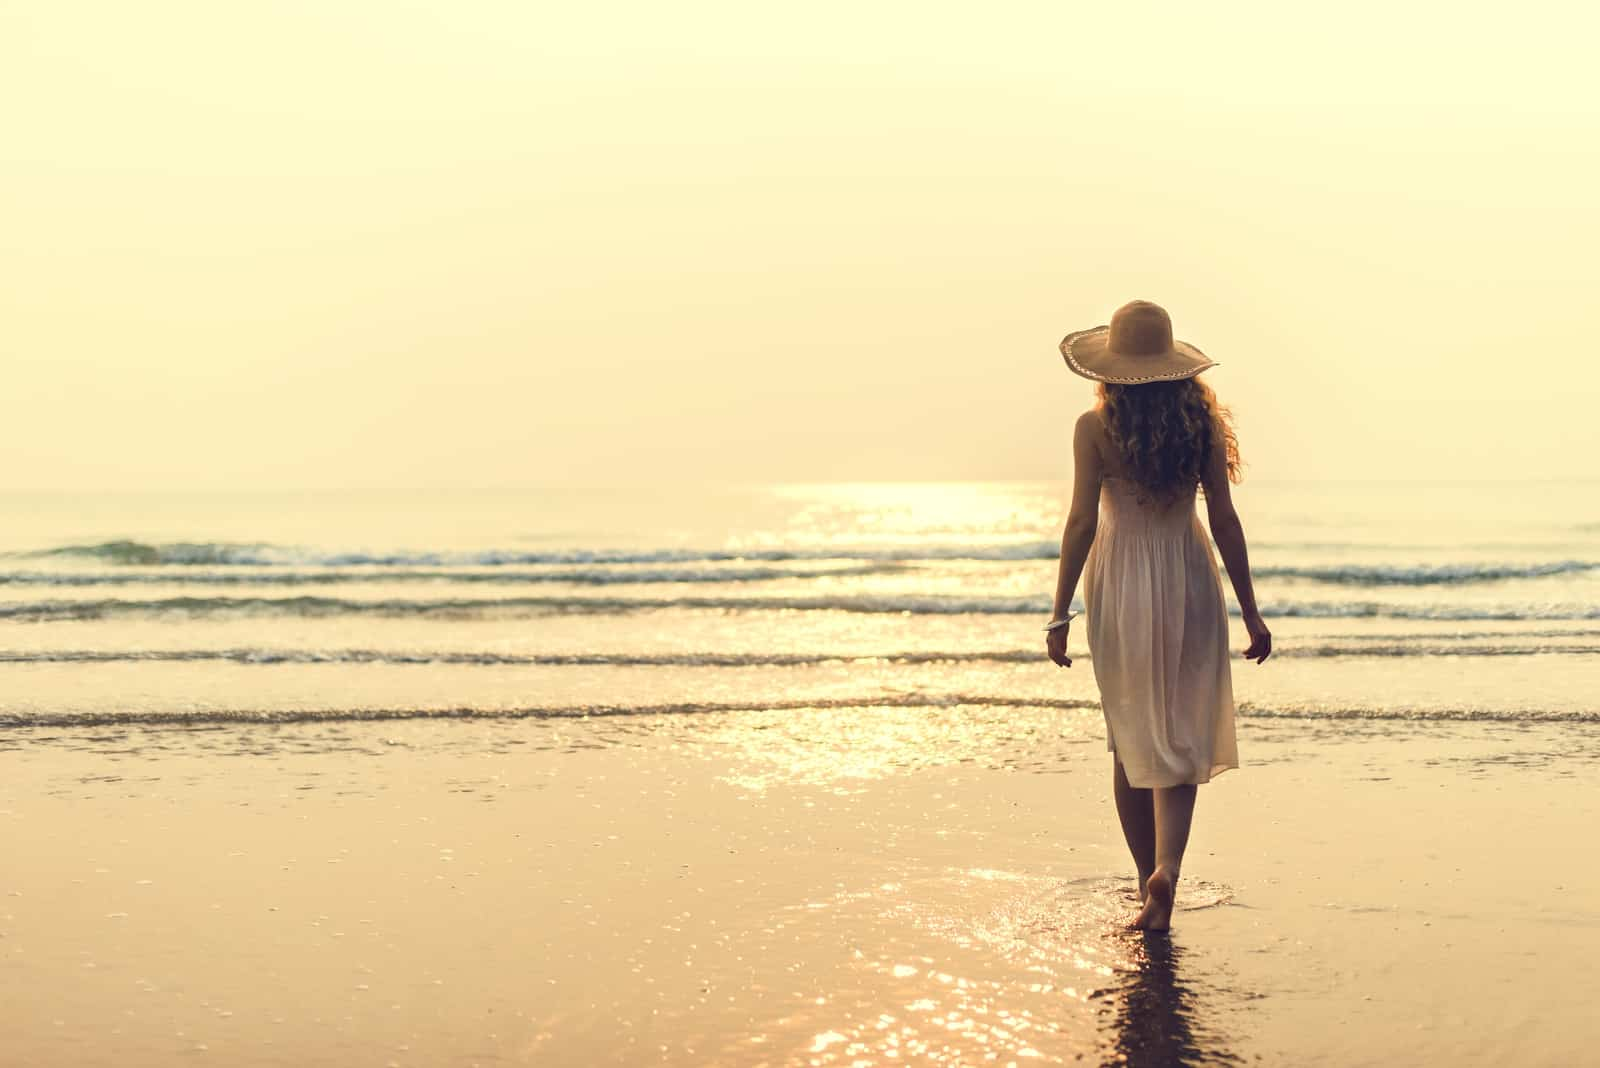 at sunset a barefoot woman in a white dress walks along the beach